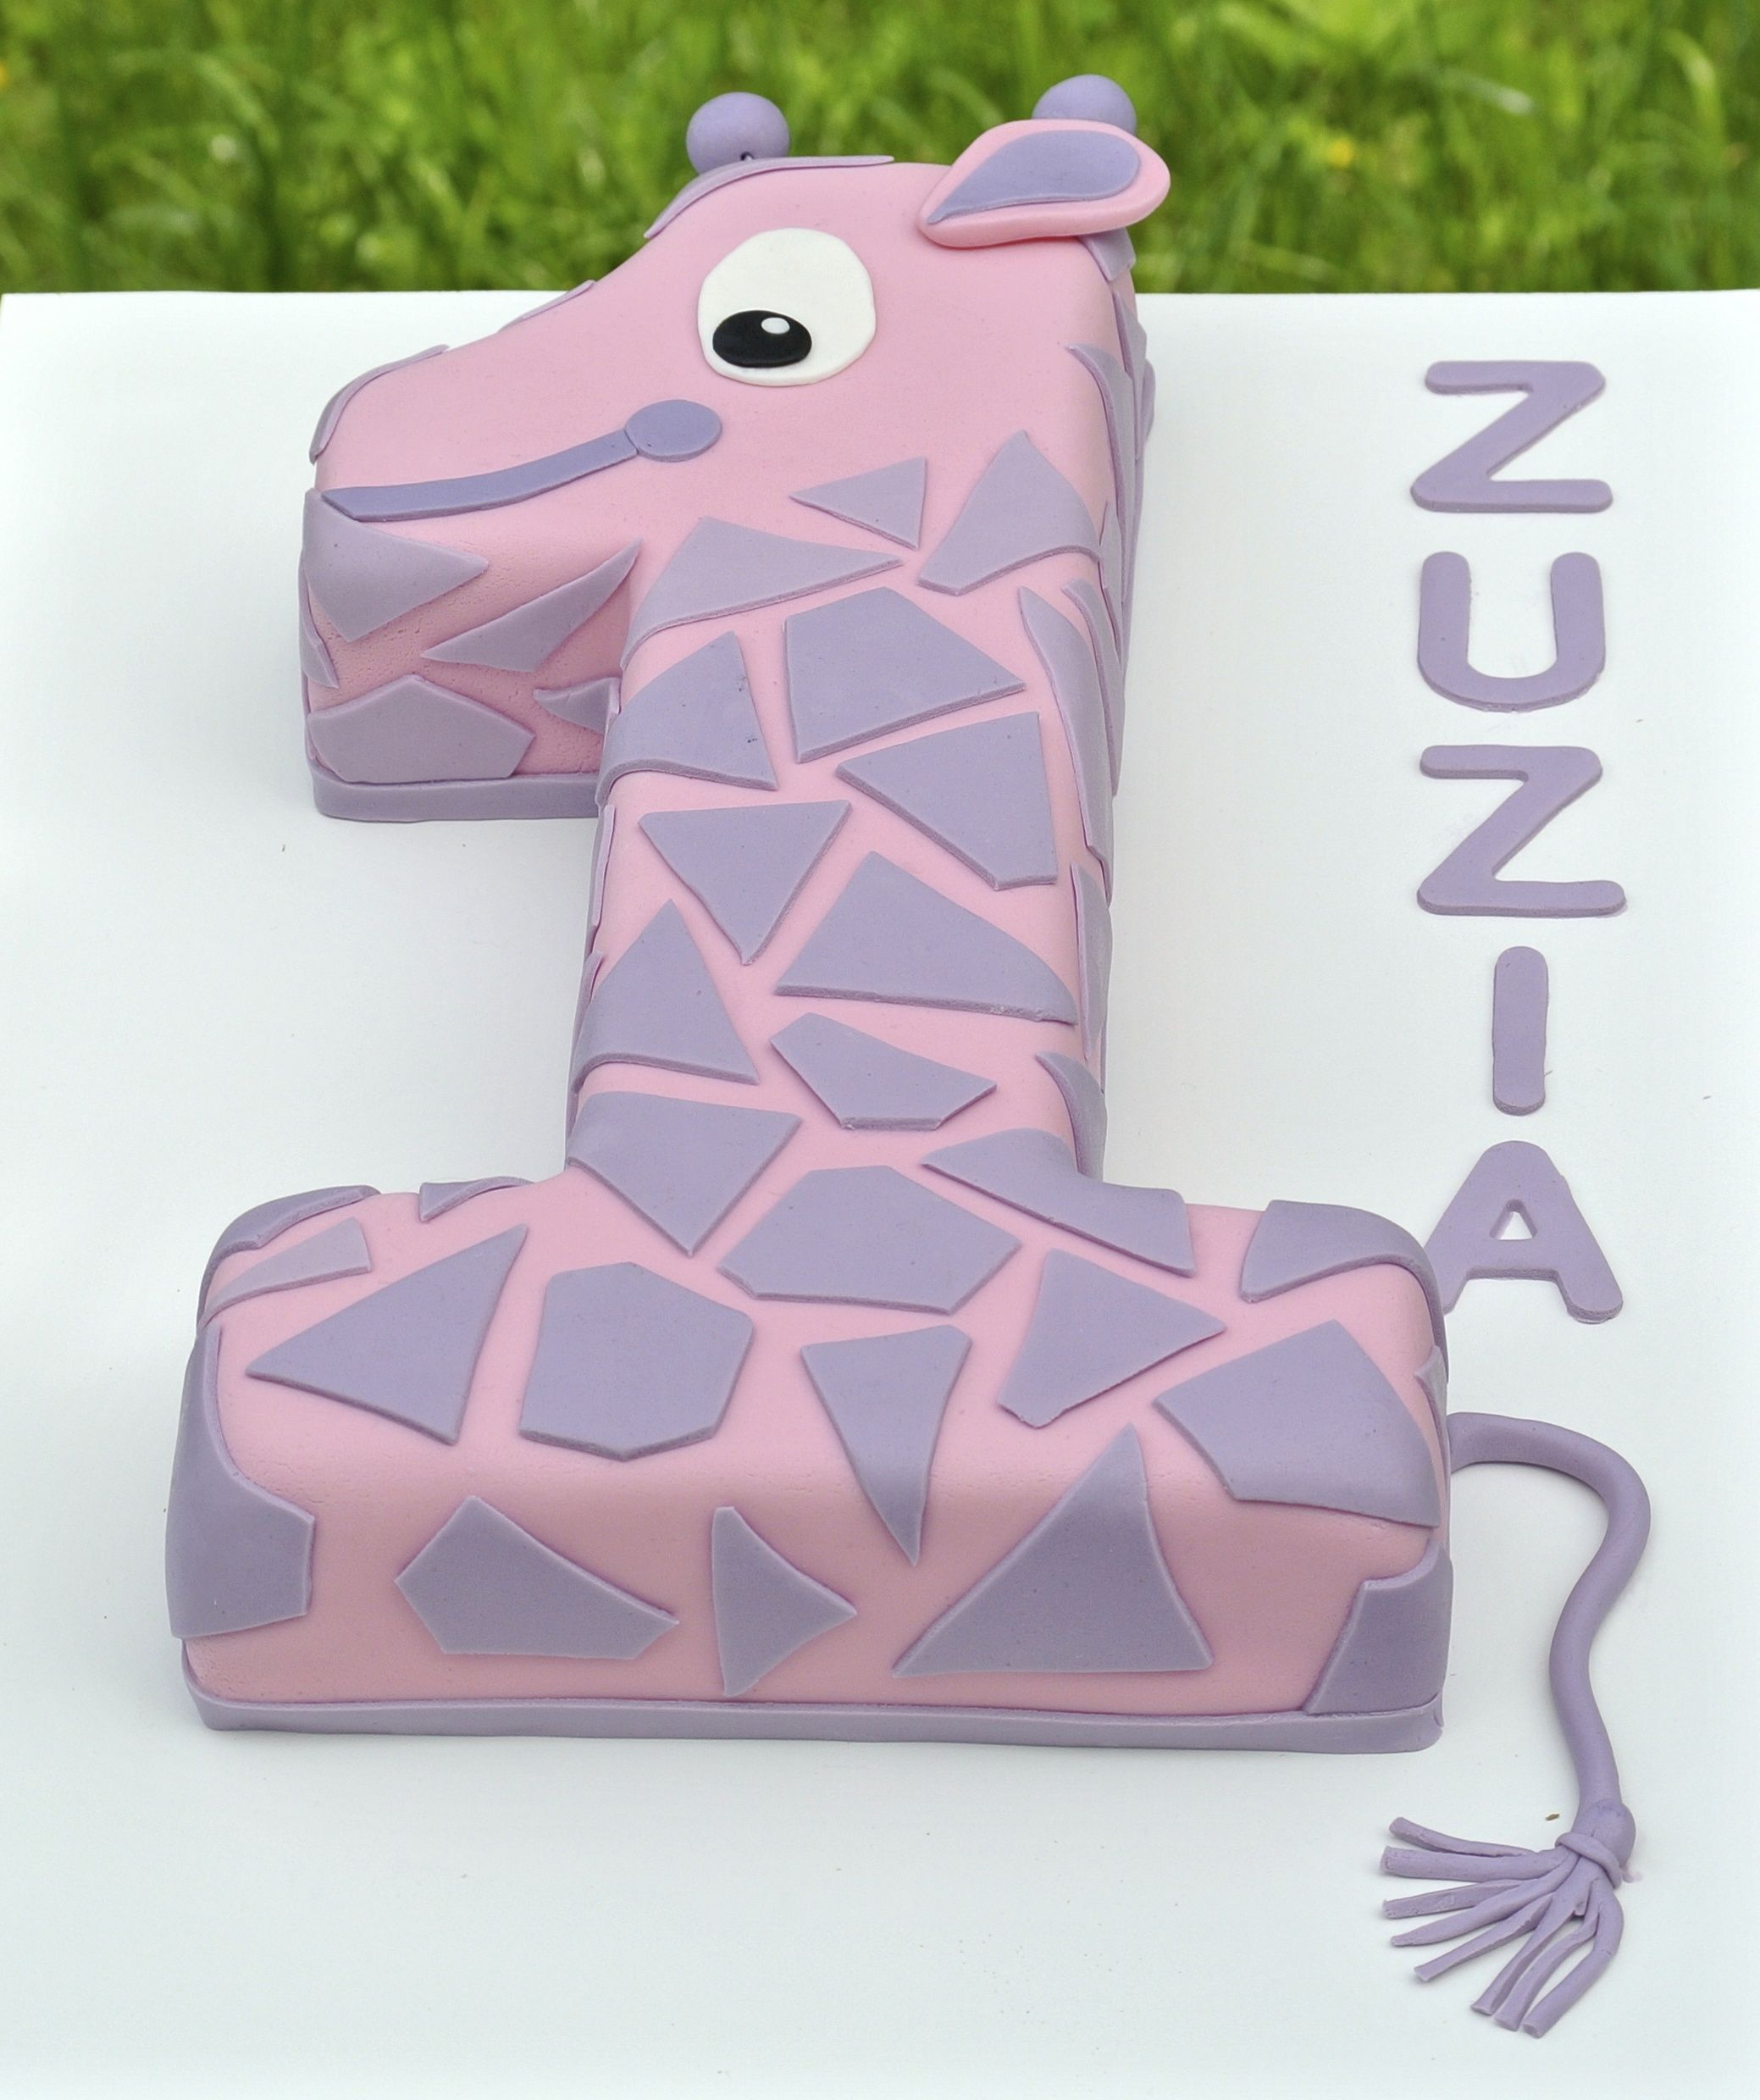 Giraffe first birthday cake for a girl Cakes Pinterest